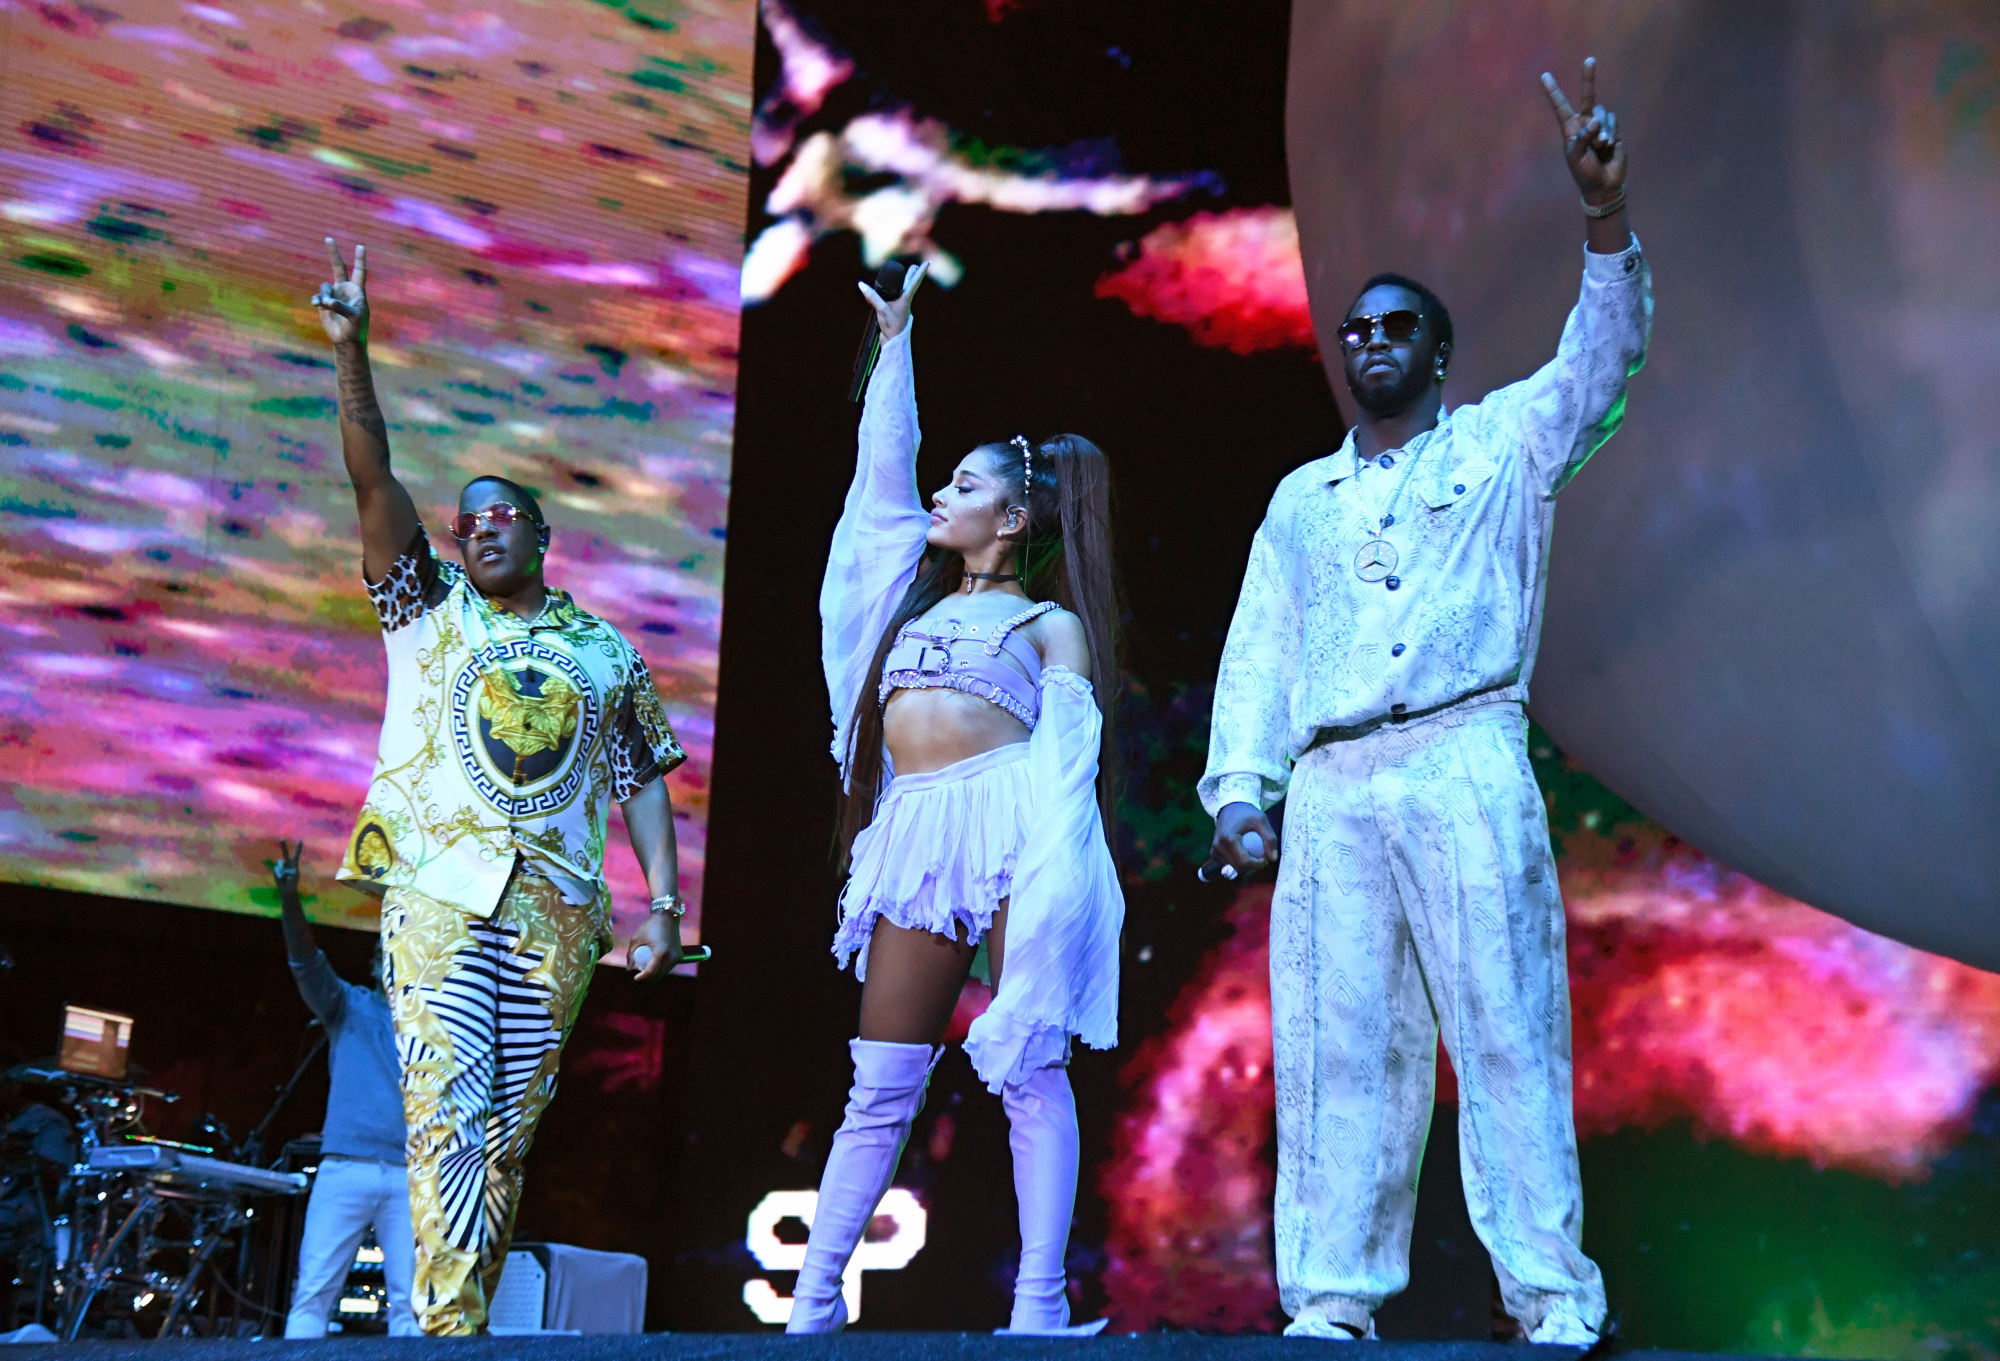 Ariana Grande, Diddy and Mase